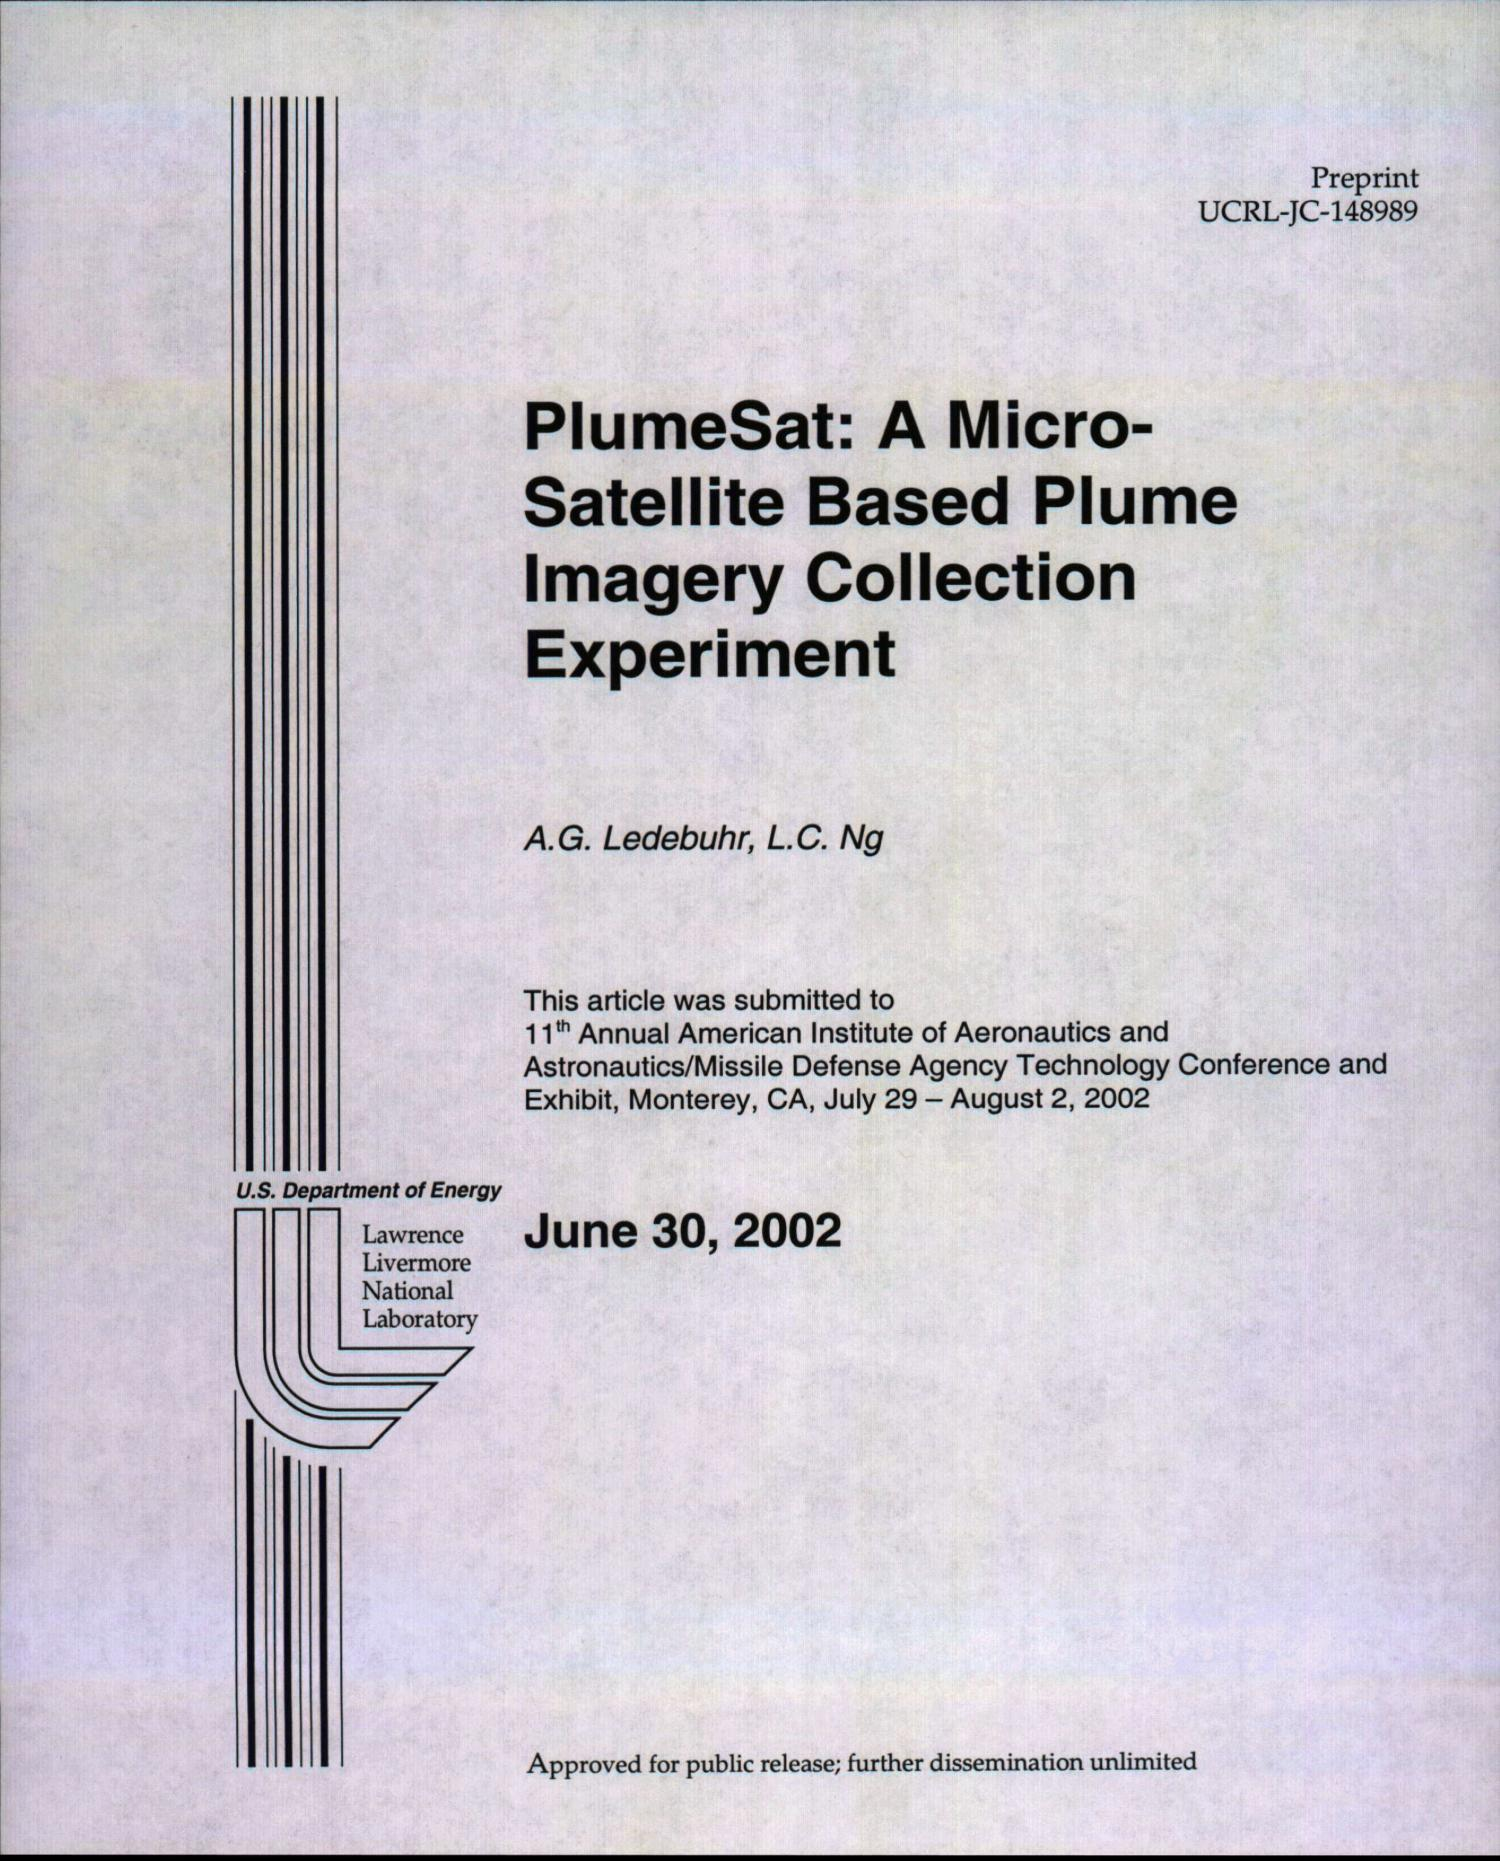 PlumeSat: A Micro-Satellite Based Plume Imagery Collection Experiment                                                                                                      [Sequence #]: 1 of 16